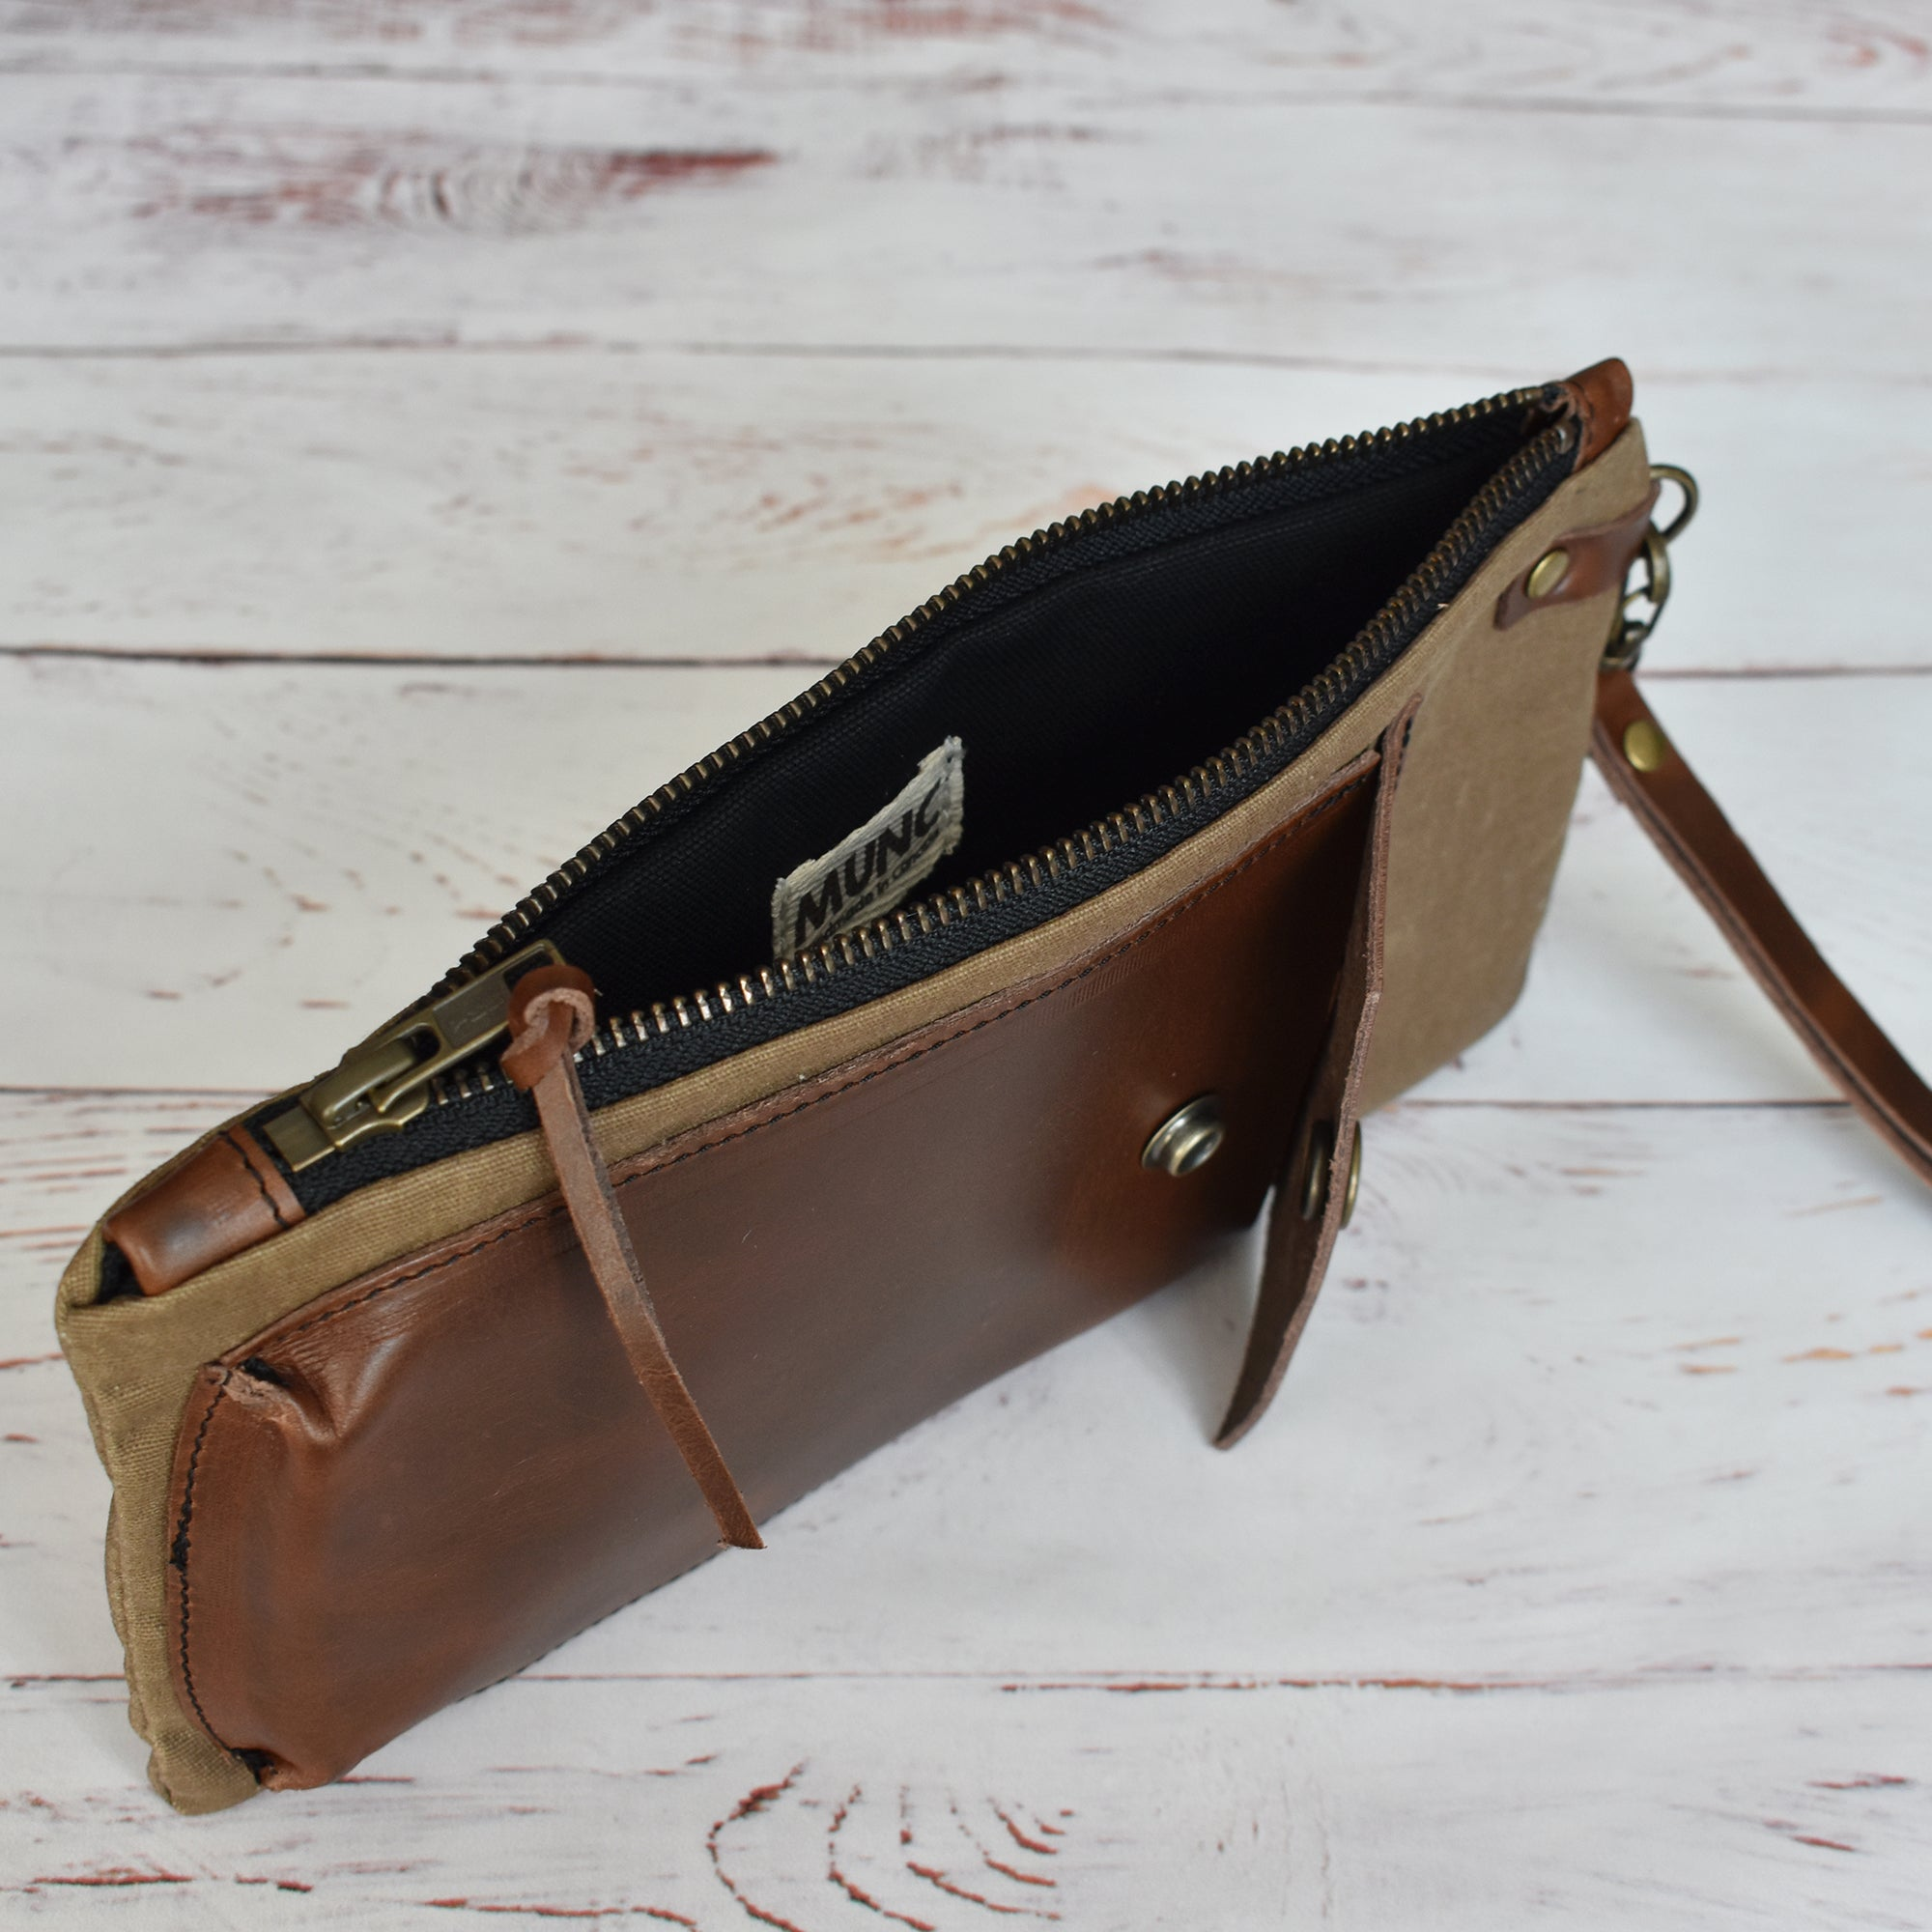 MUNC waxed canvas and veg tan leather pouch